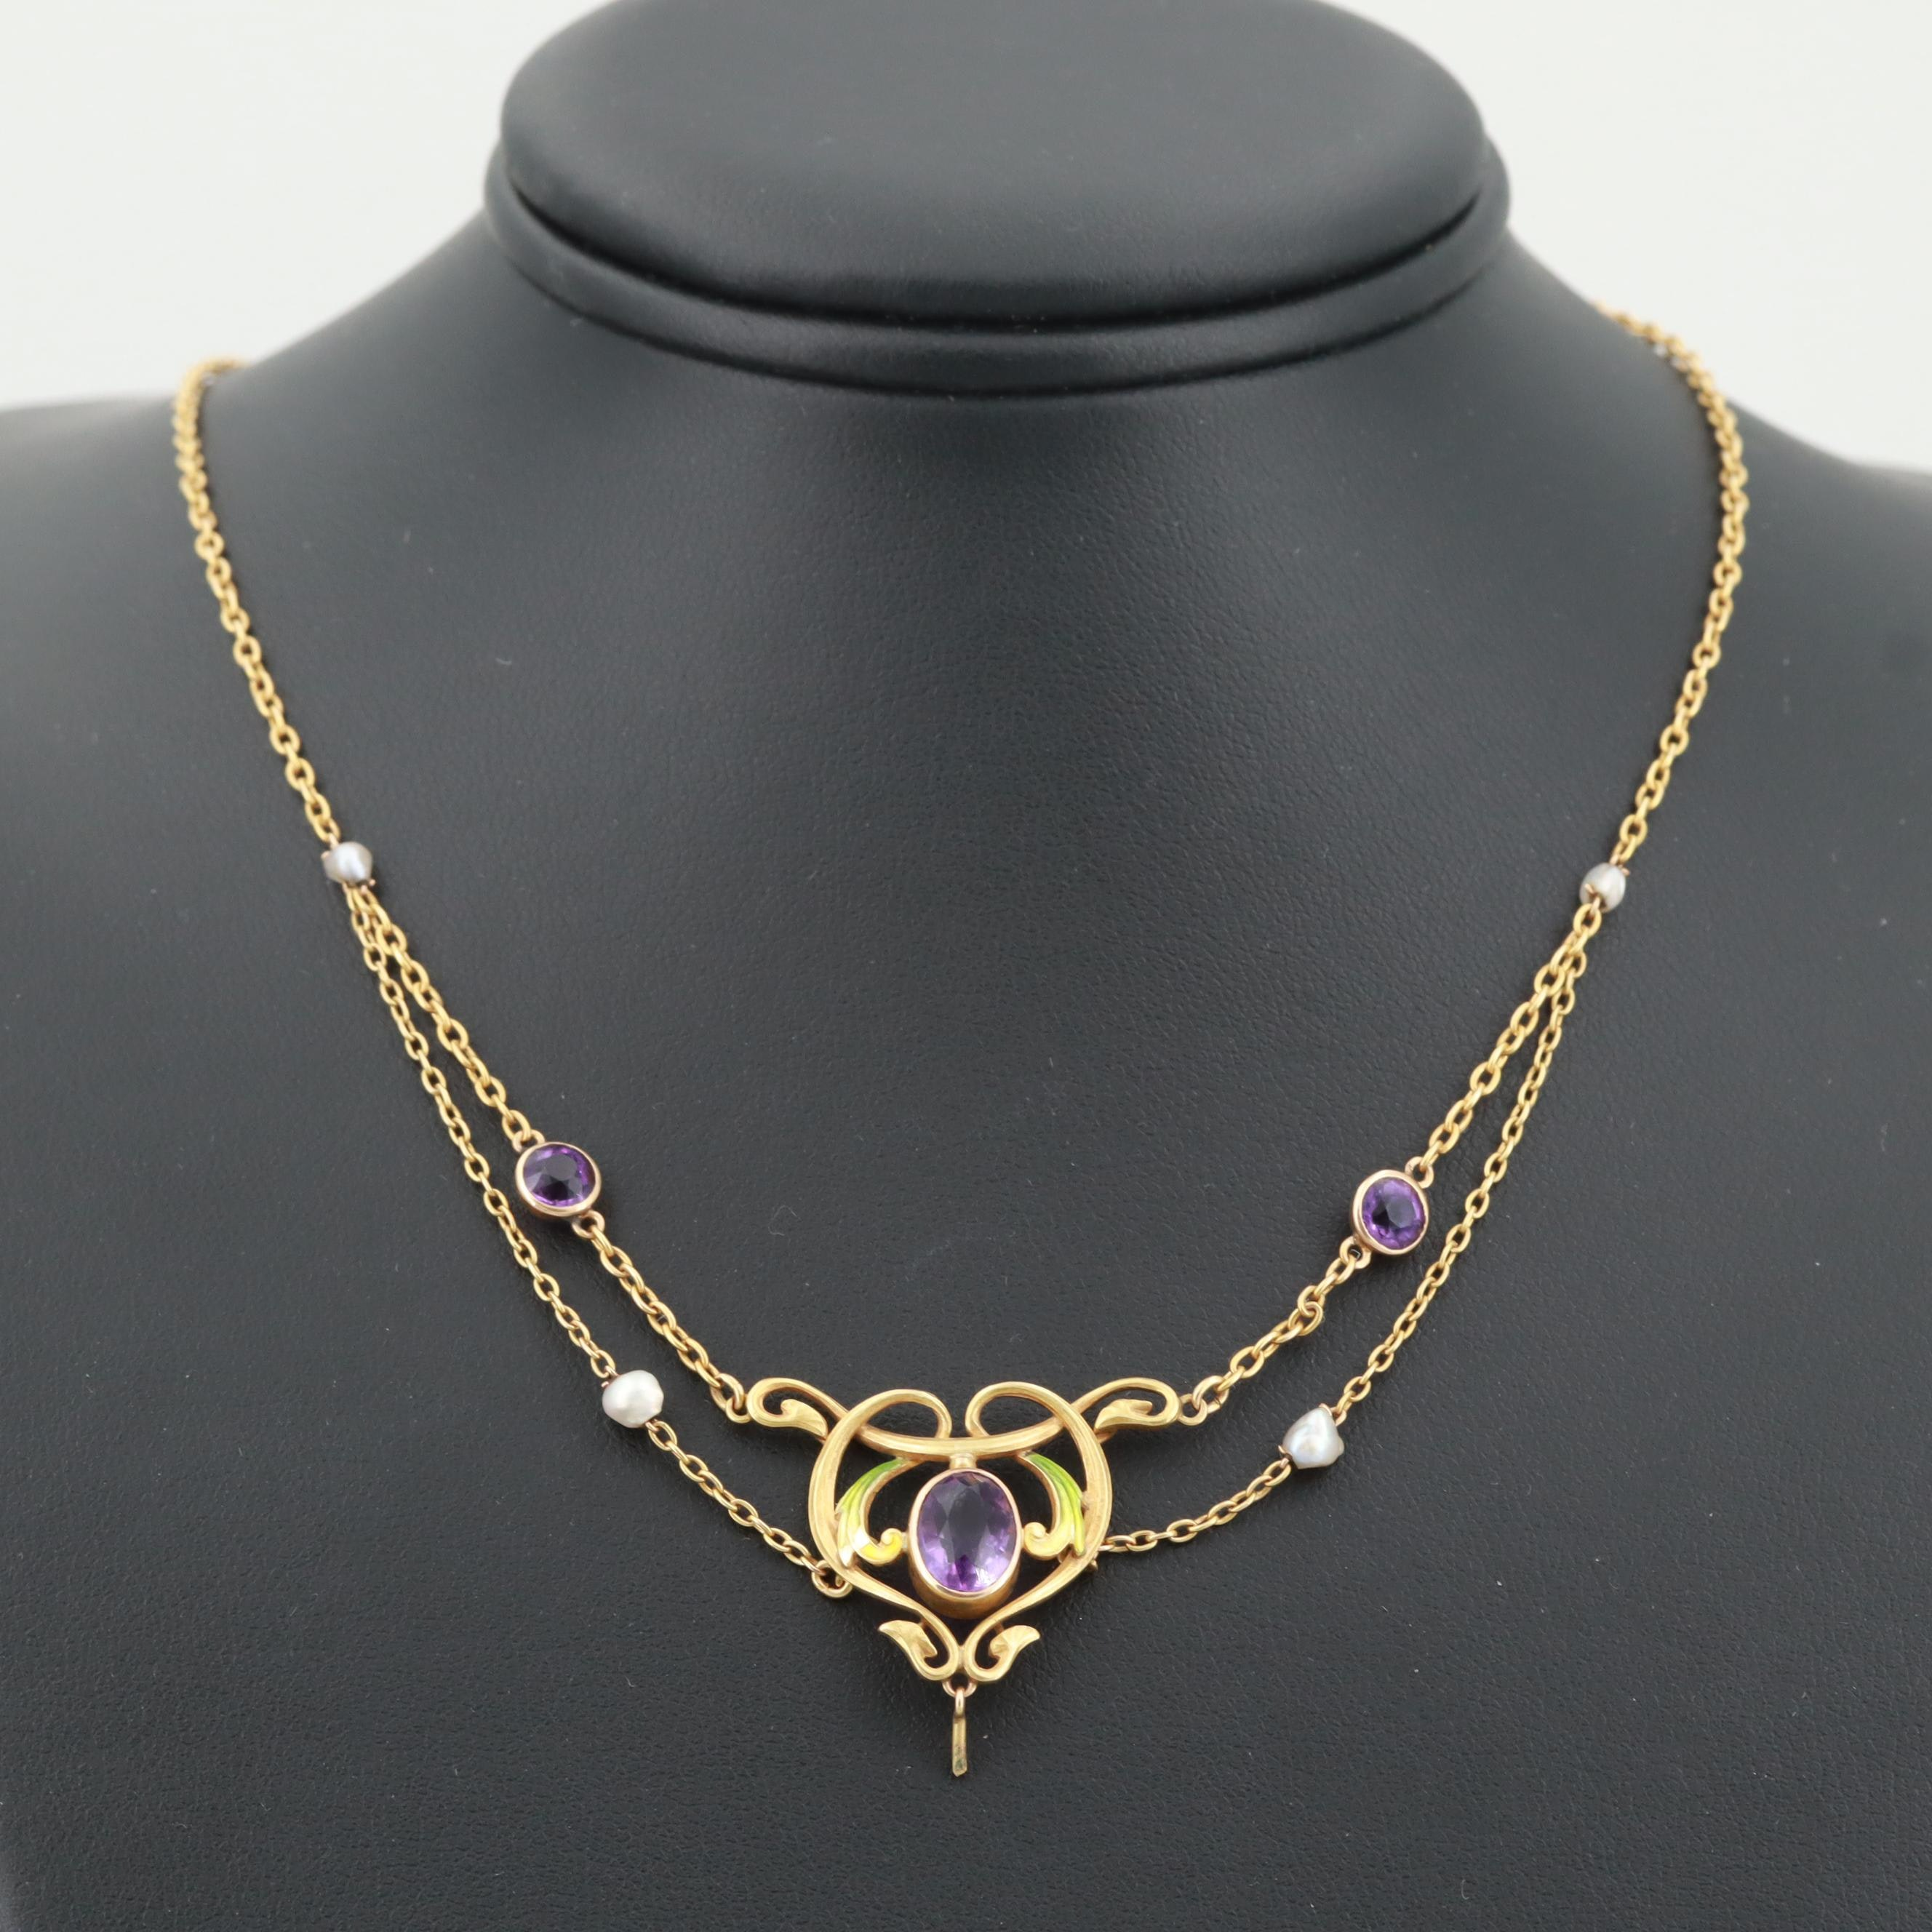 Art Nouveau 14K Yellow Gold Amethyst, Seed Pearl and Enamel Festoon Necklace